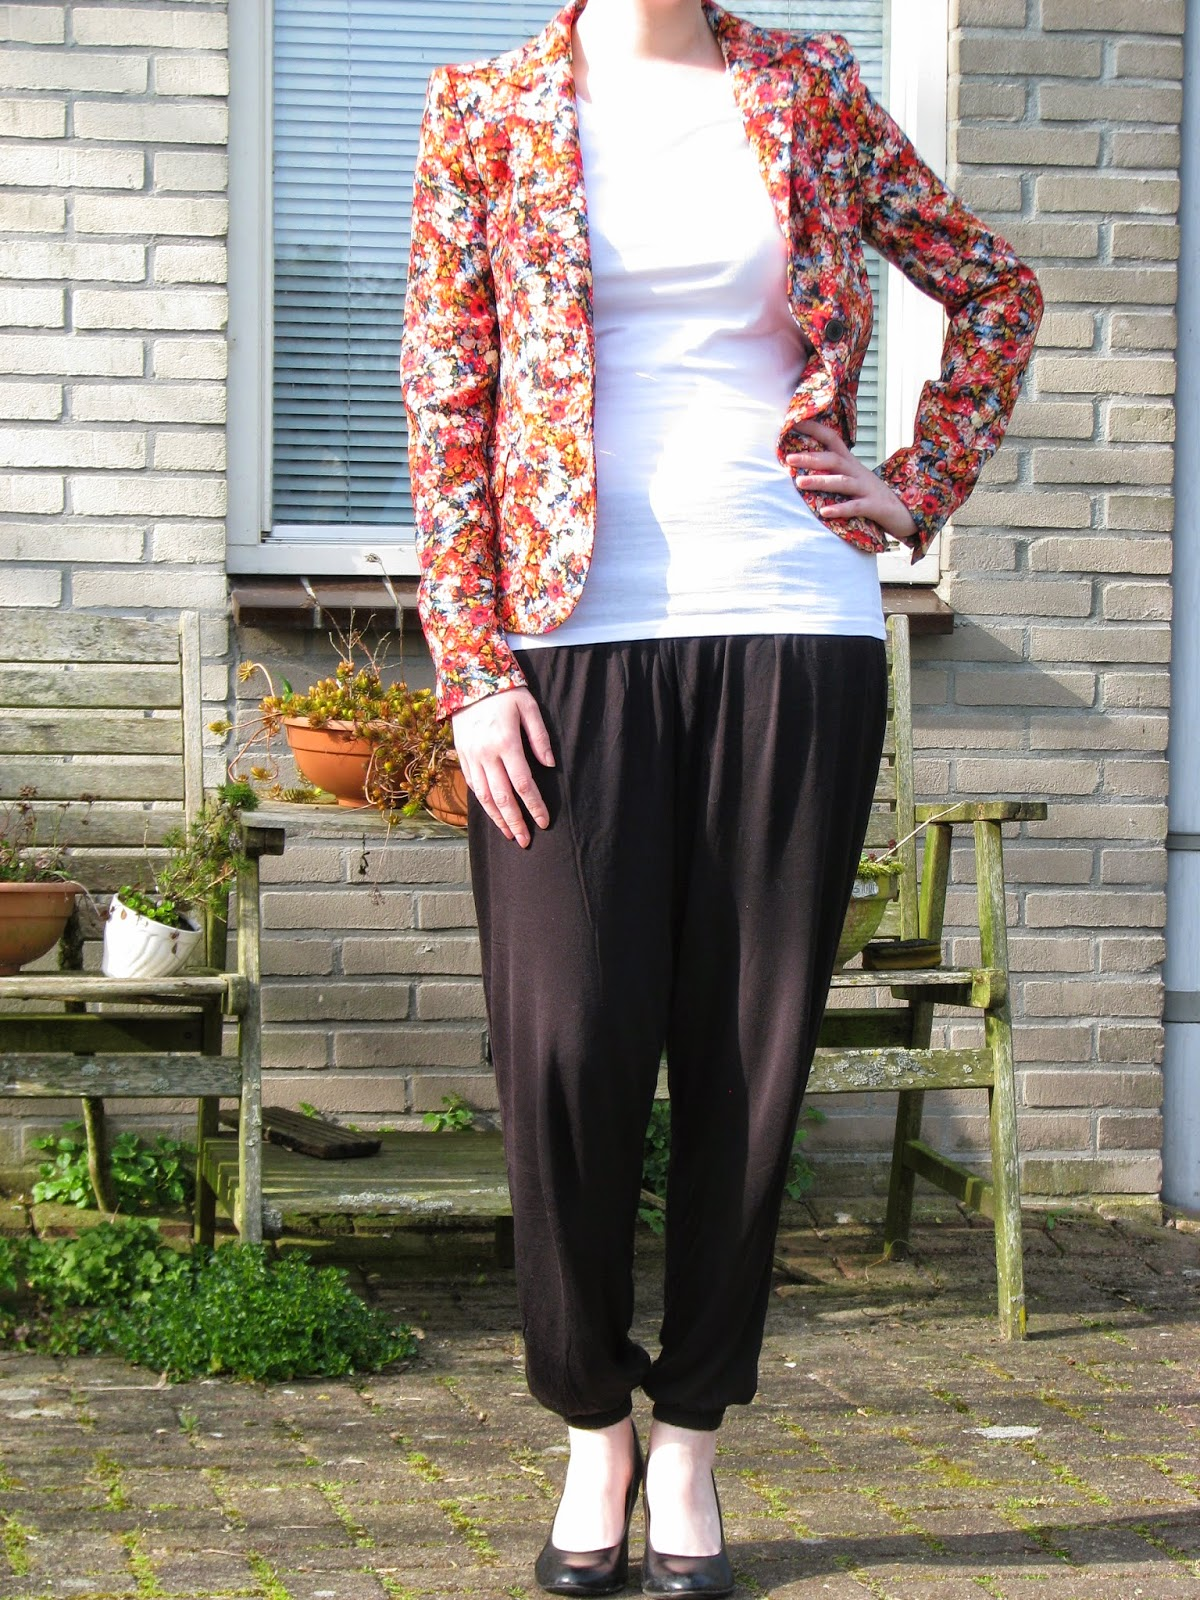 http://hmlovur.blogspot.nl/2014/04/outfits-of-week-week-14.html